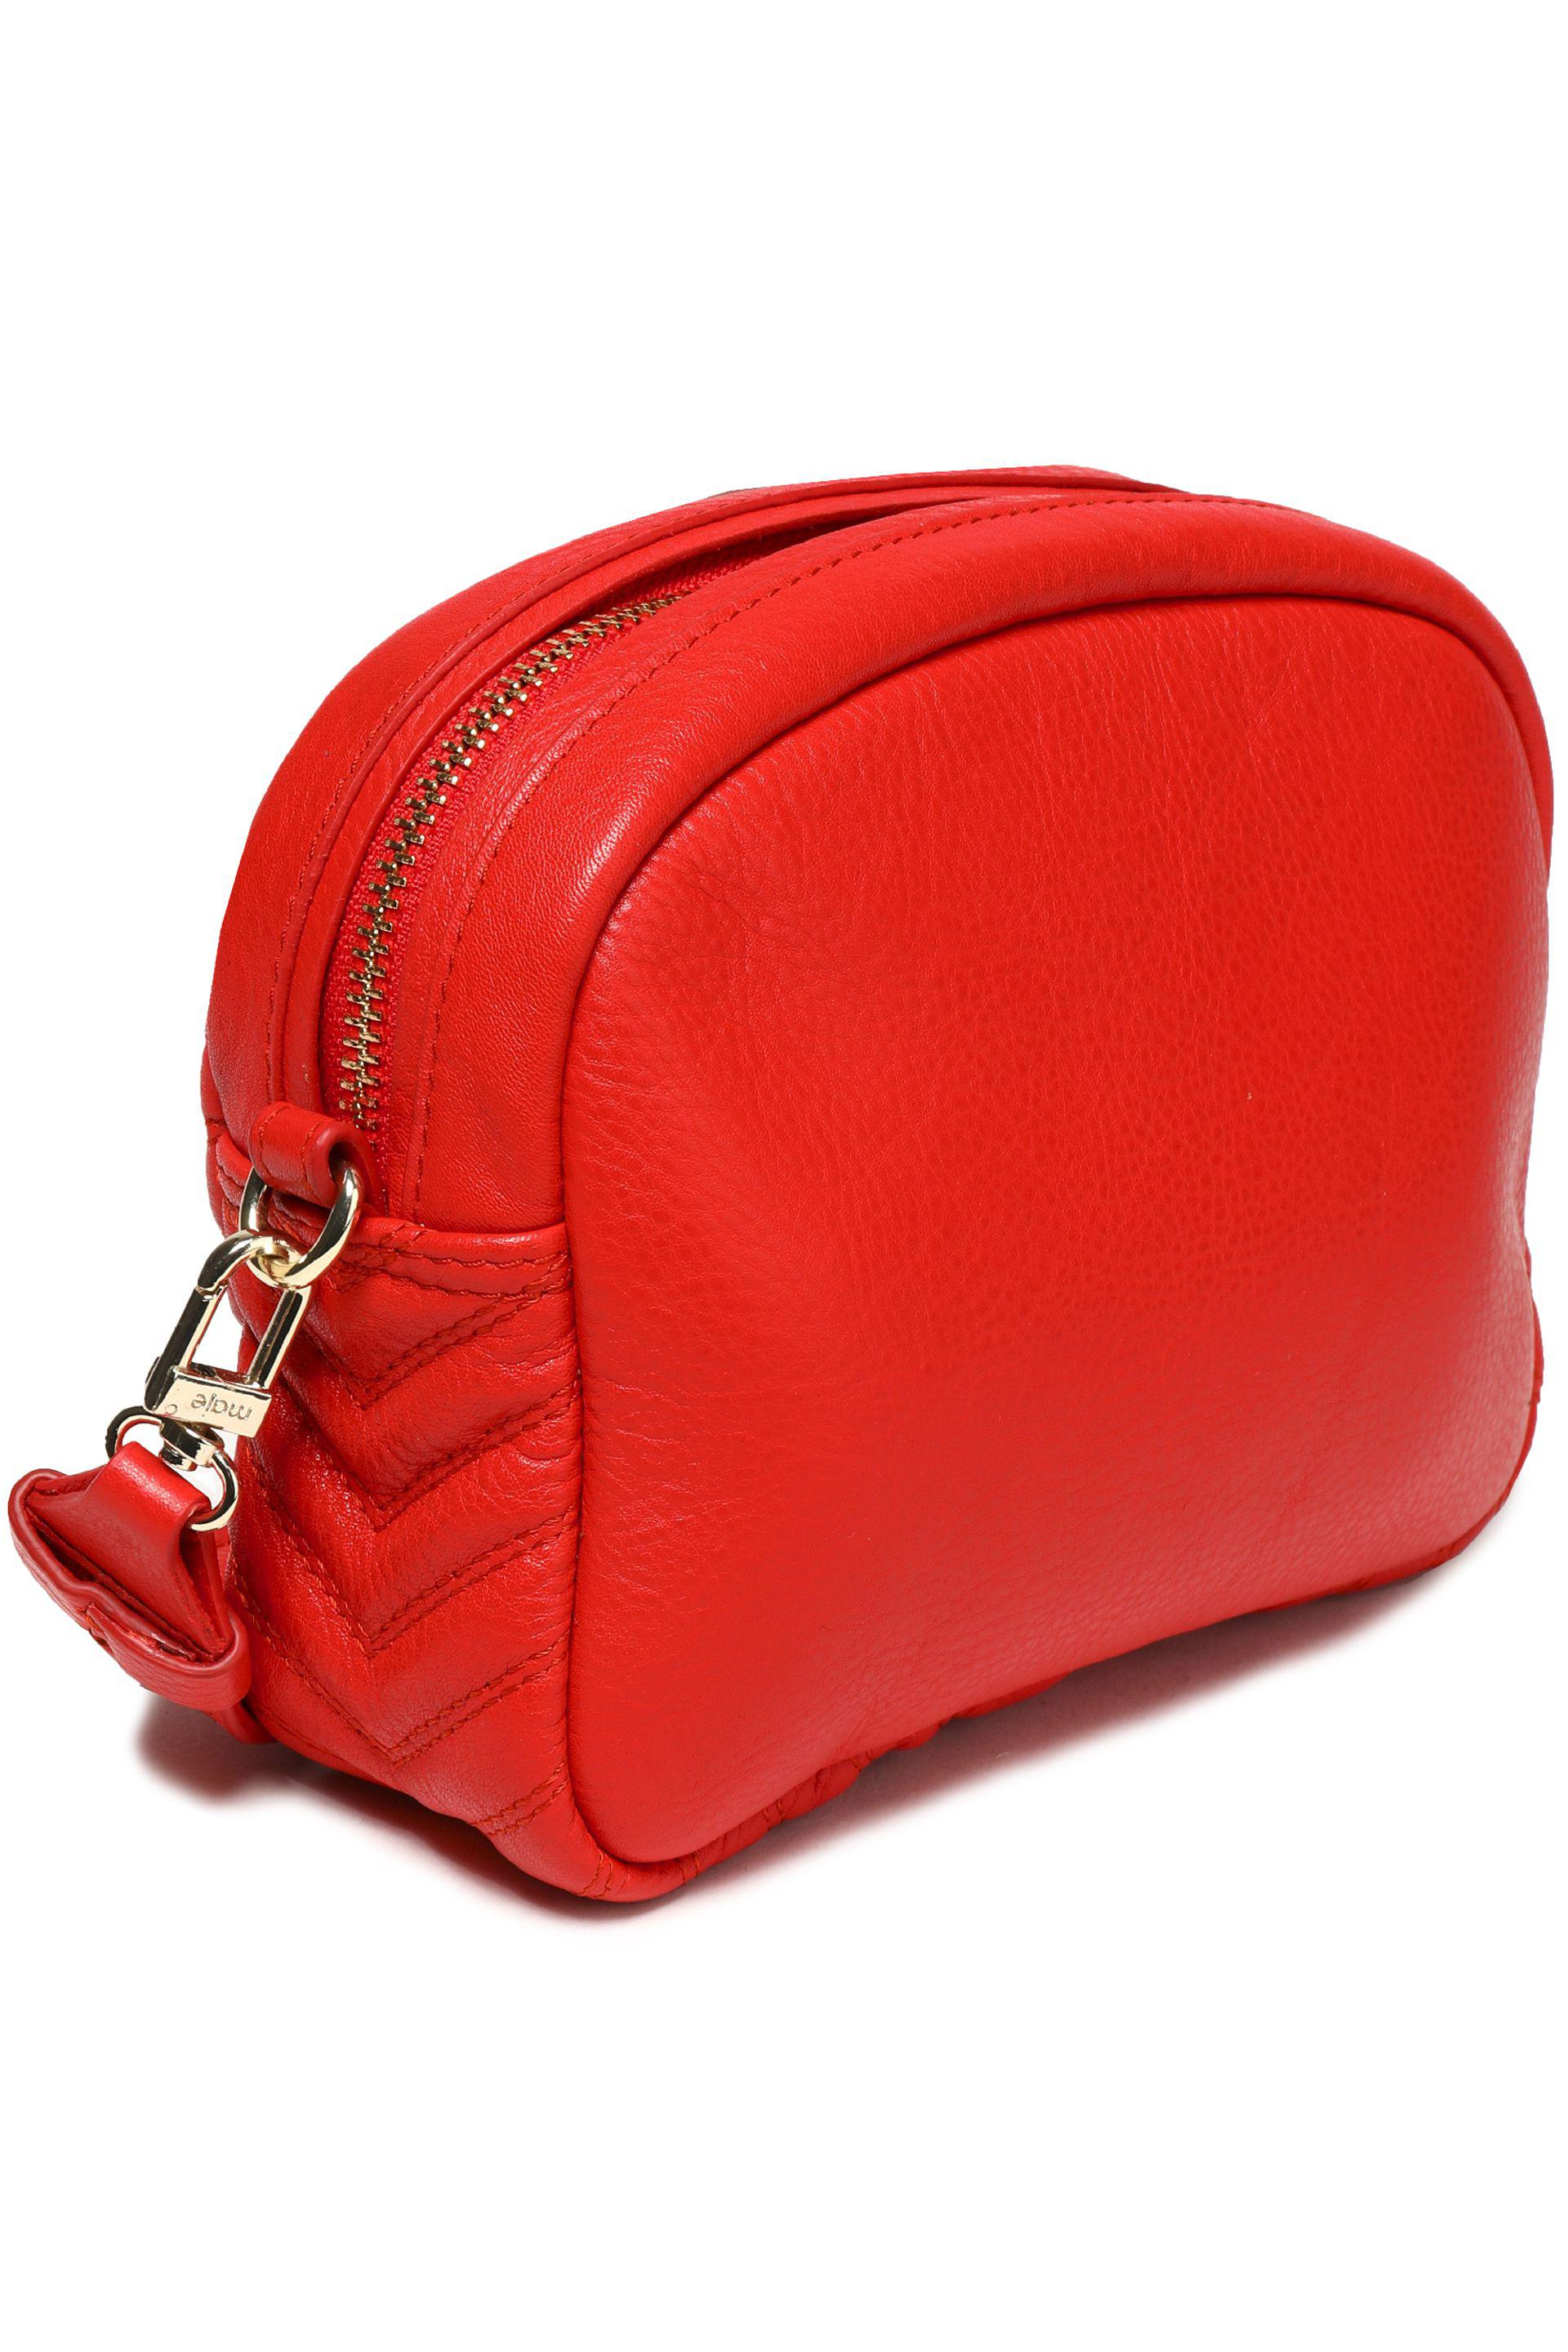 Maje Leather Cross Body in Red